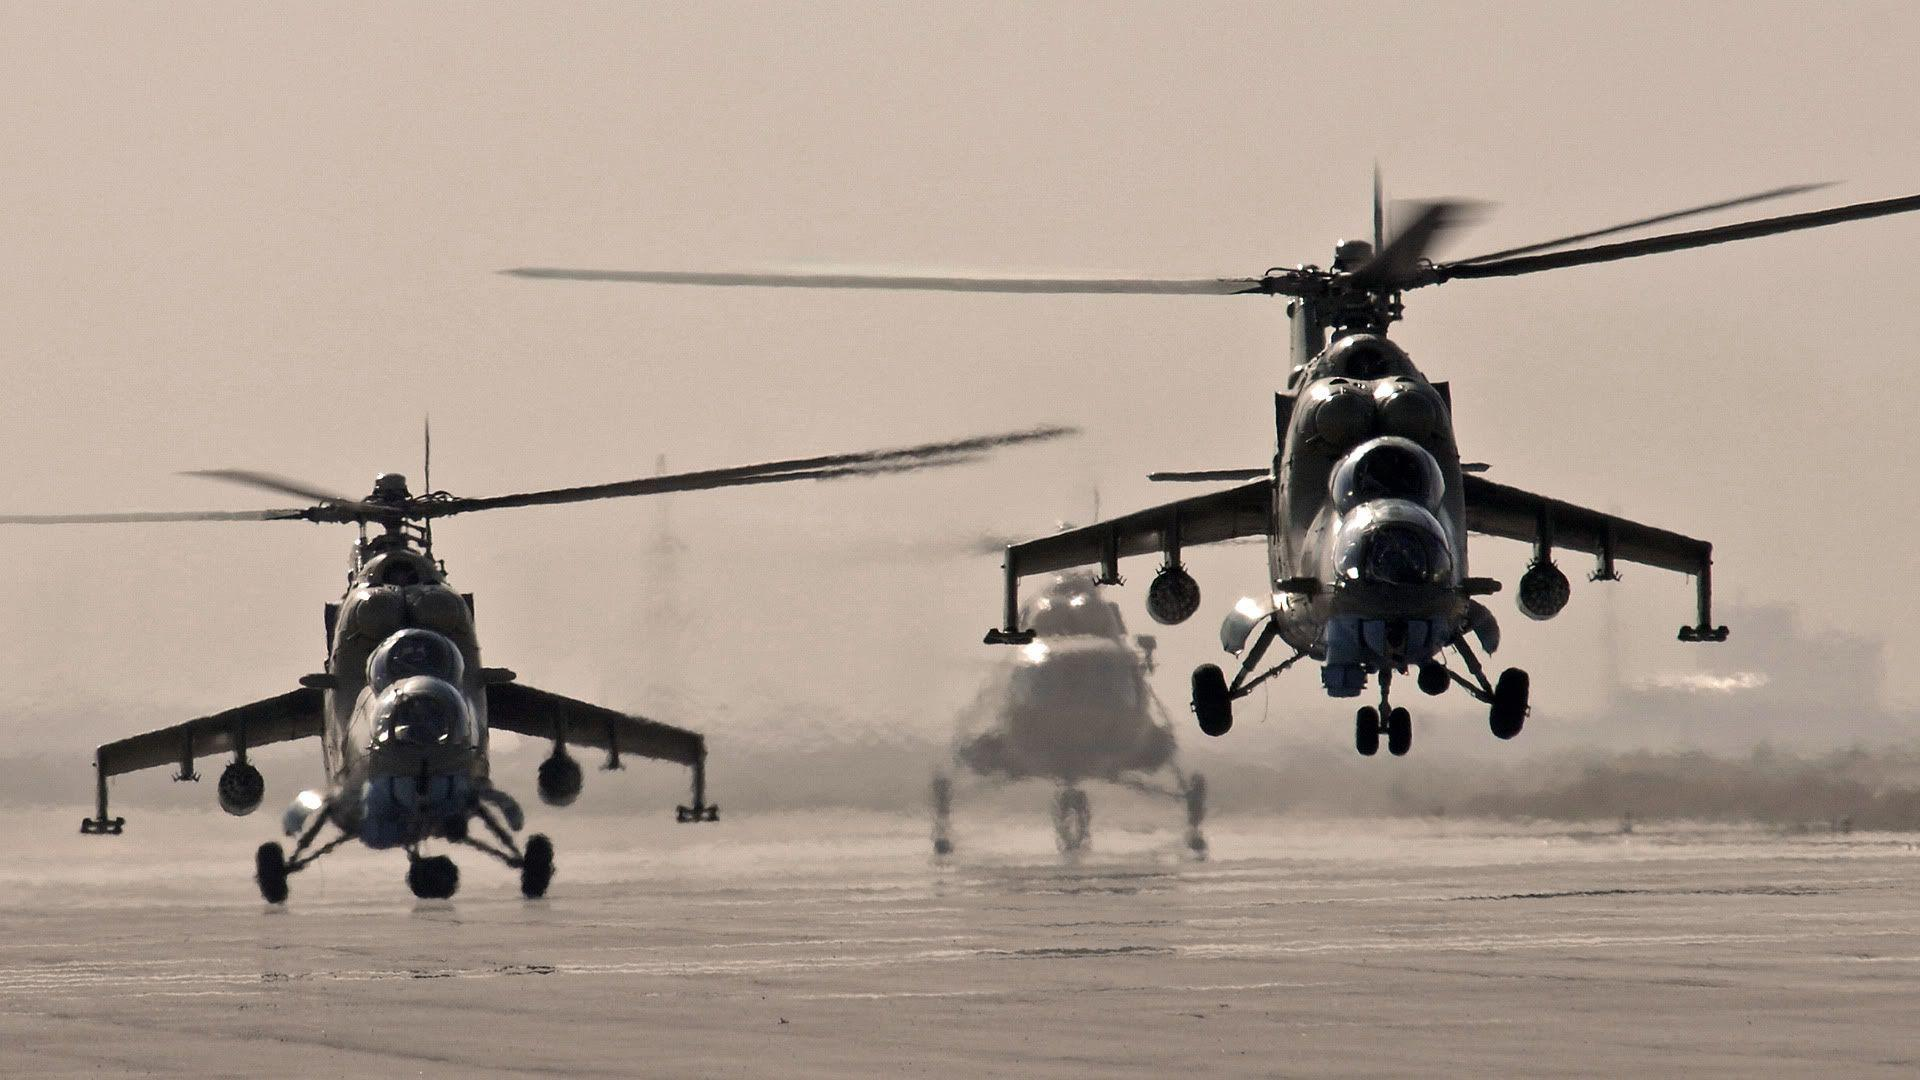 Army Helicopter Wallpaper Photos